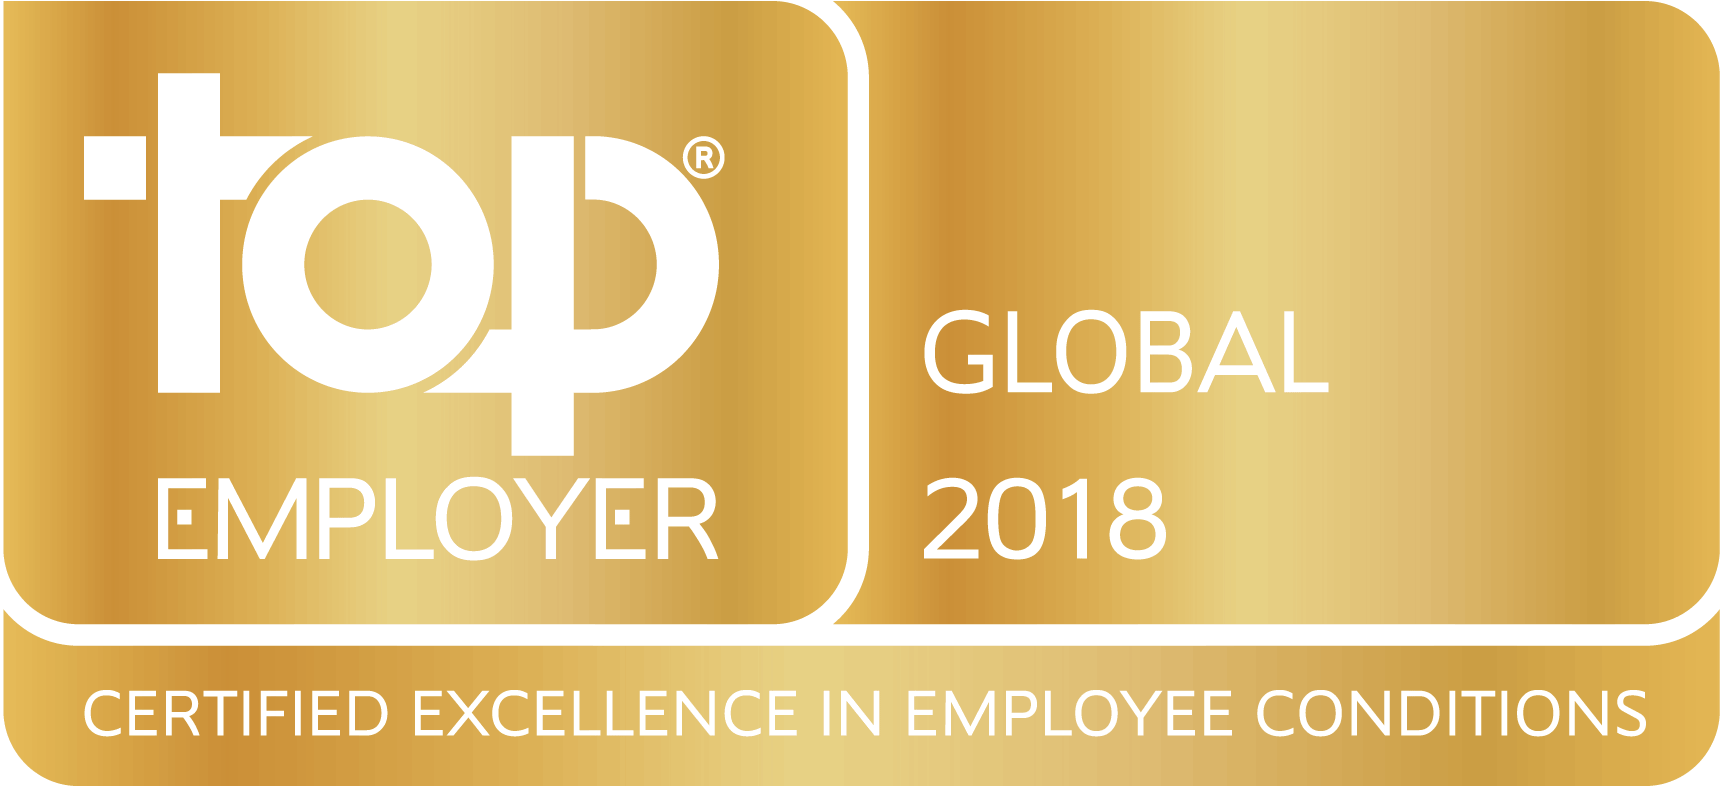 Top_Employer_Global_2018